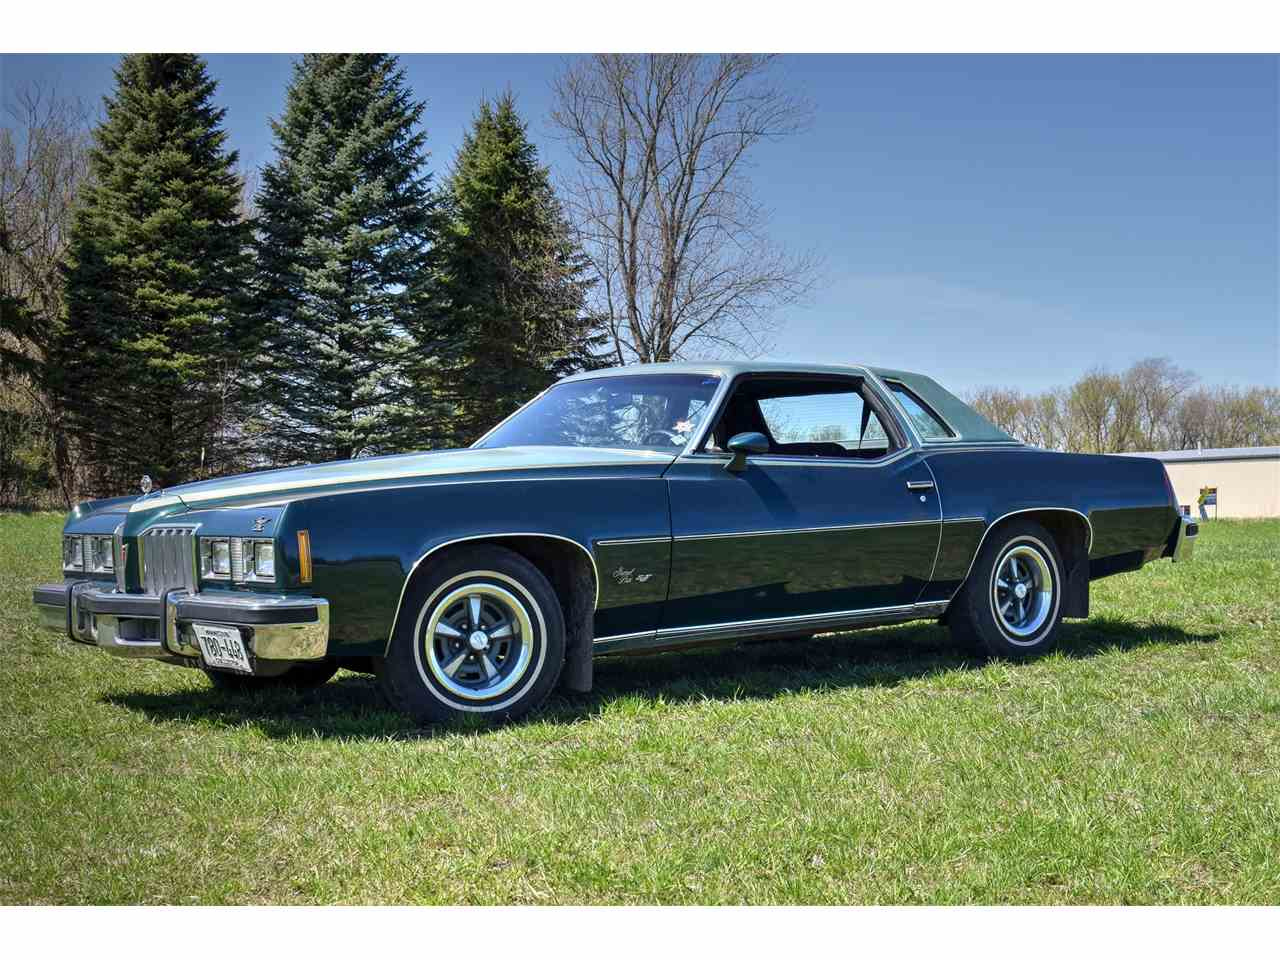 1977 Monte Carlo For Sale On Craigslist - 2019-2020 Top ...